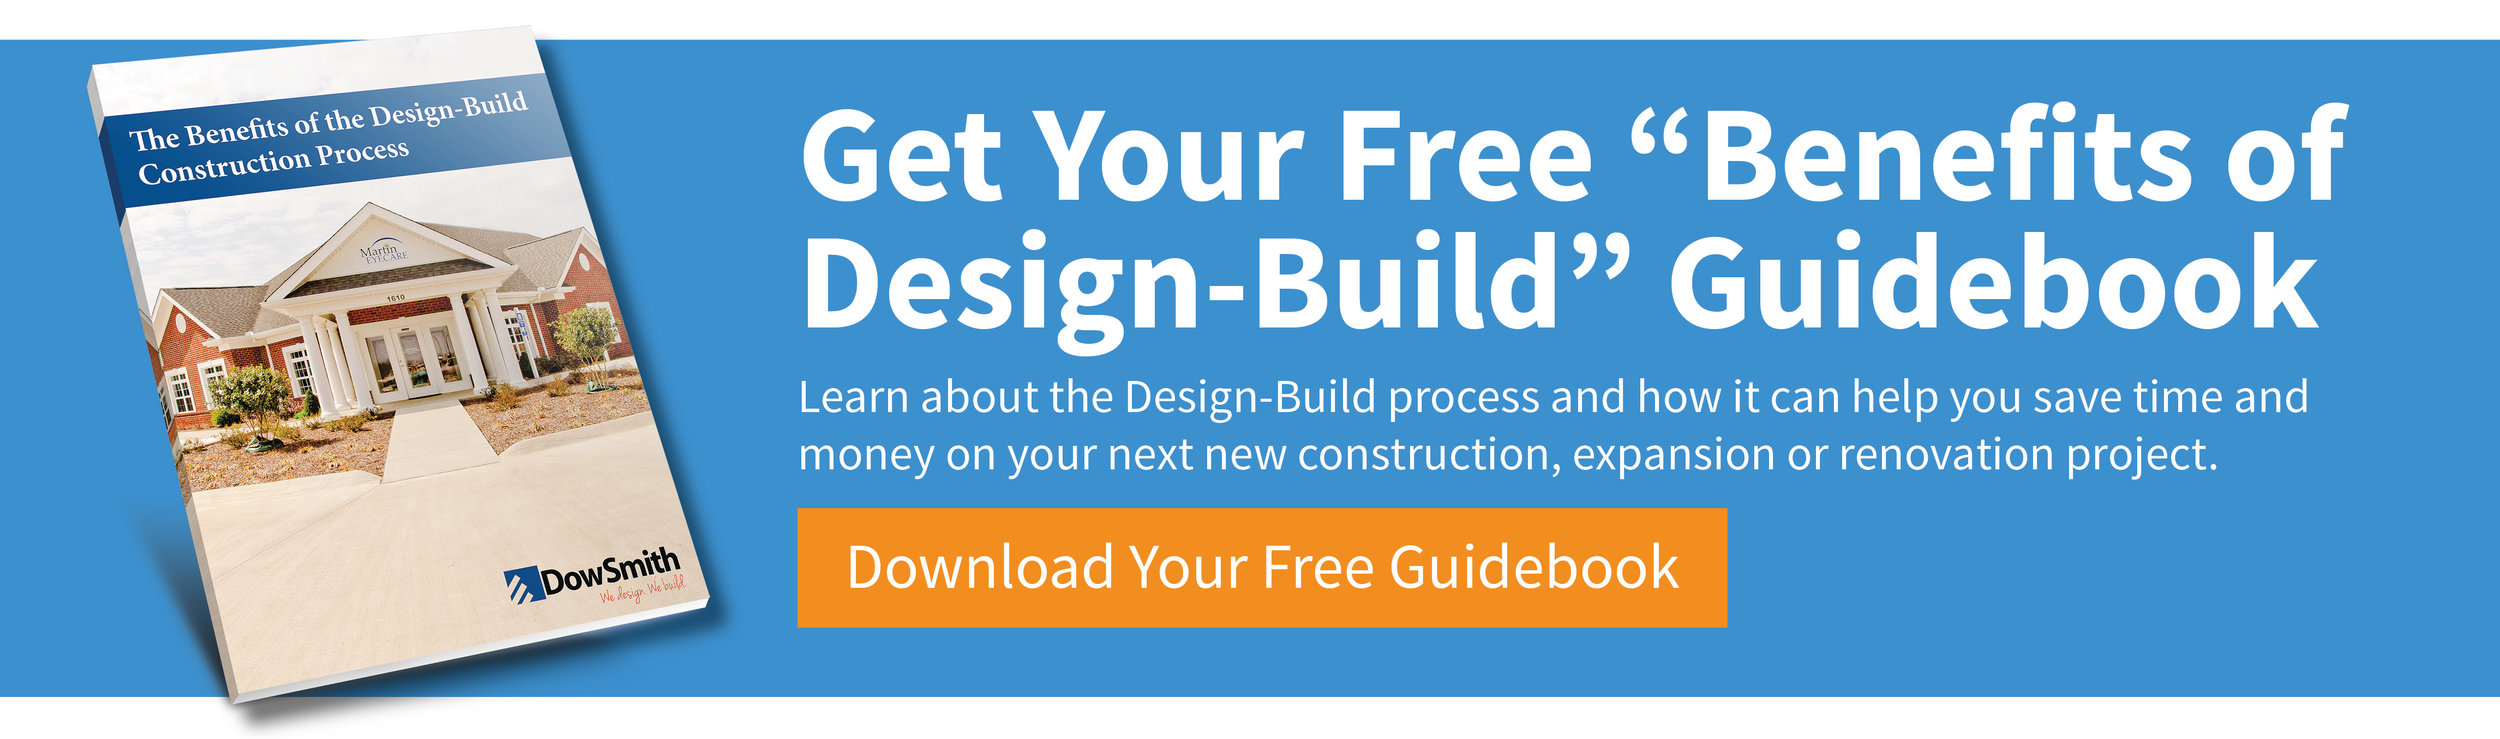 Download the Design-Build Guidebook | Dow Smith Company | Smyrna, Tennessee